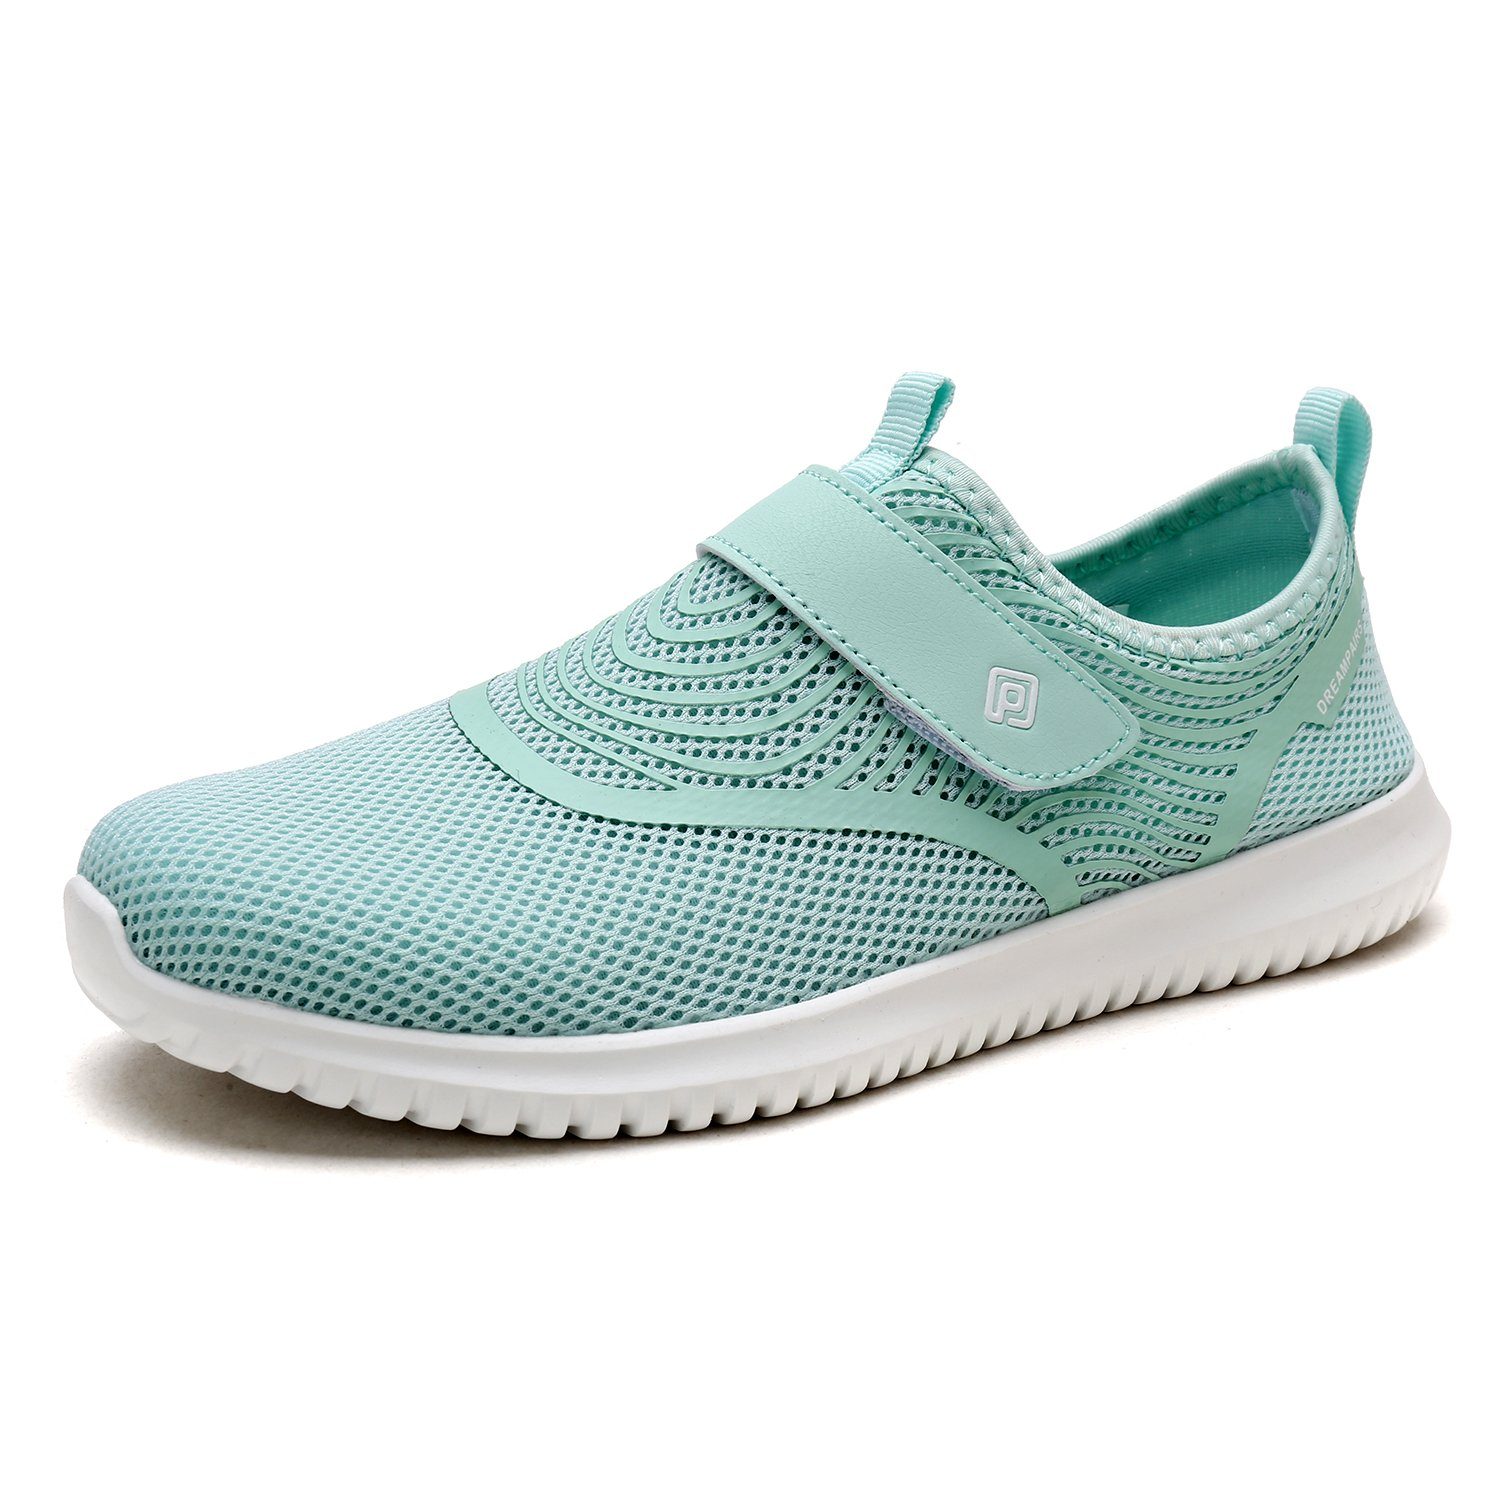 DREAM PAIRS Quick-Dry Water Shoes Sports Walking Casual Sneakers for Women B07889KTFQ 5 M US|Lt.green